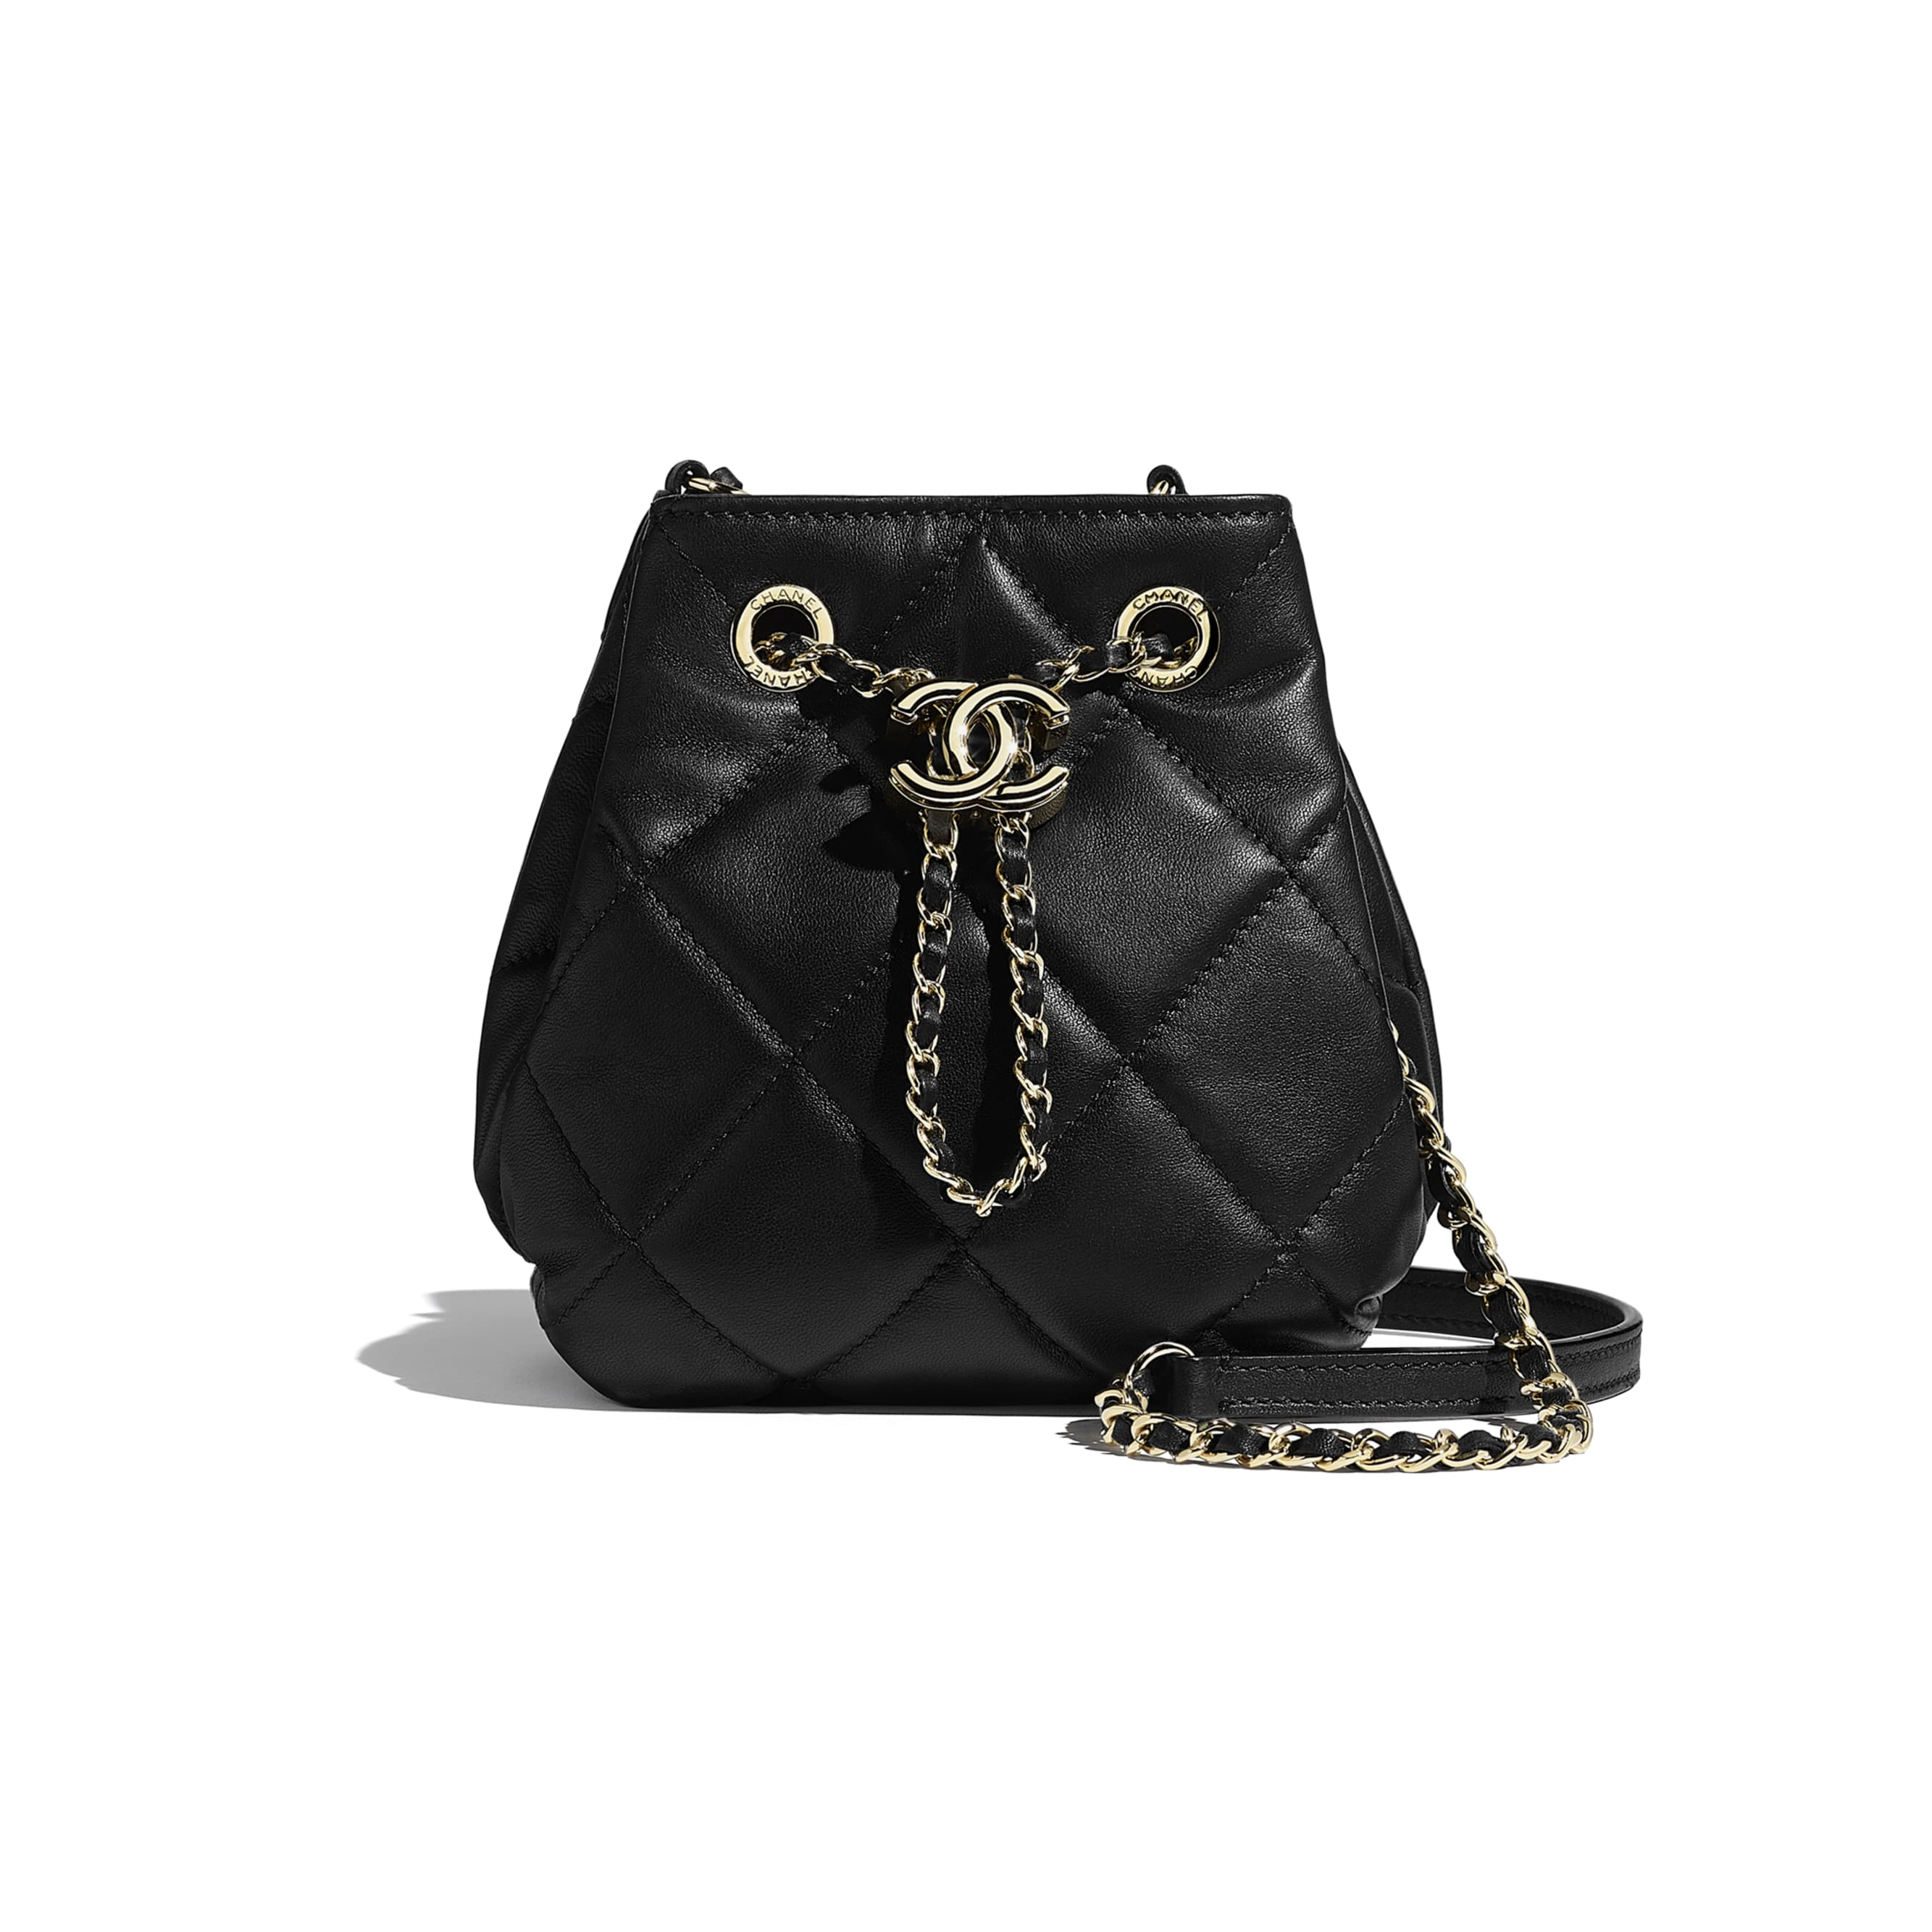 Small Drawstring Bag - Black - Lambskin - CHANEL - Default view - see standard sized version